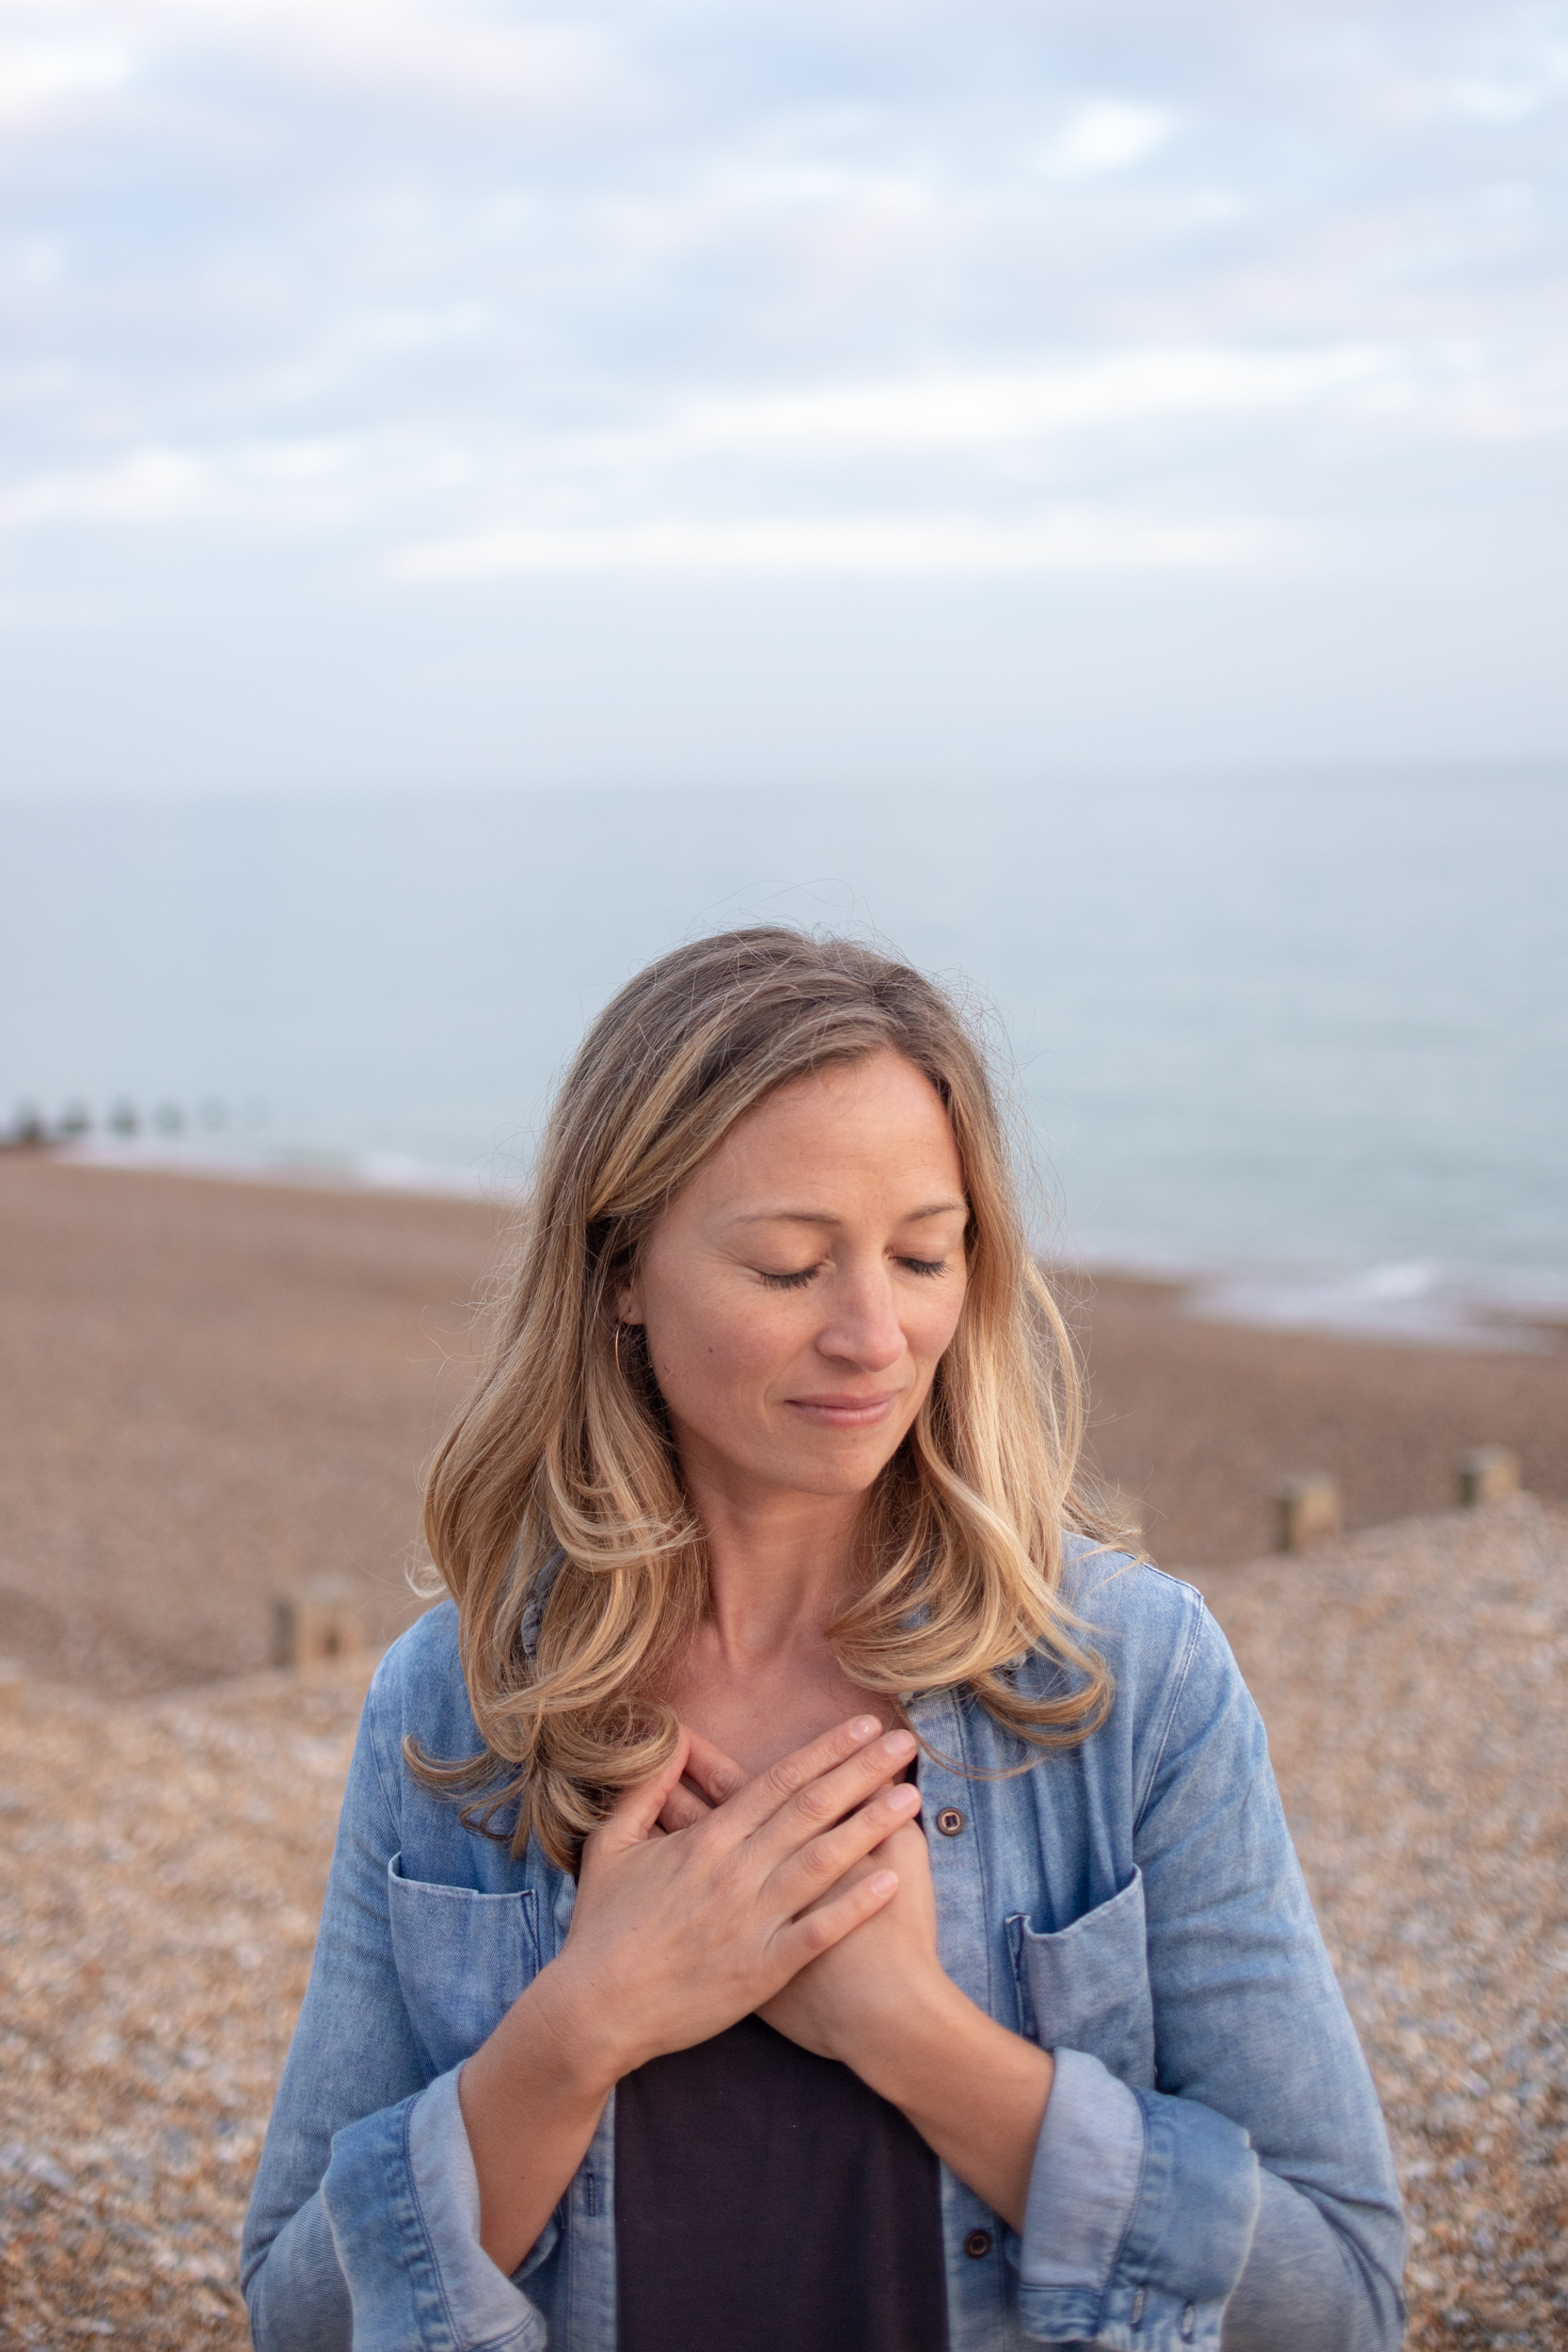 Yoga teacher Brea with hands on heart in front of sea